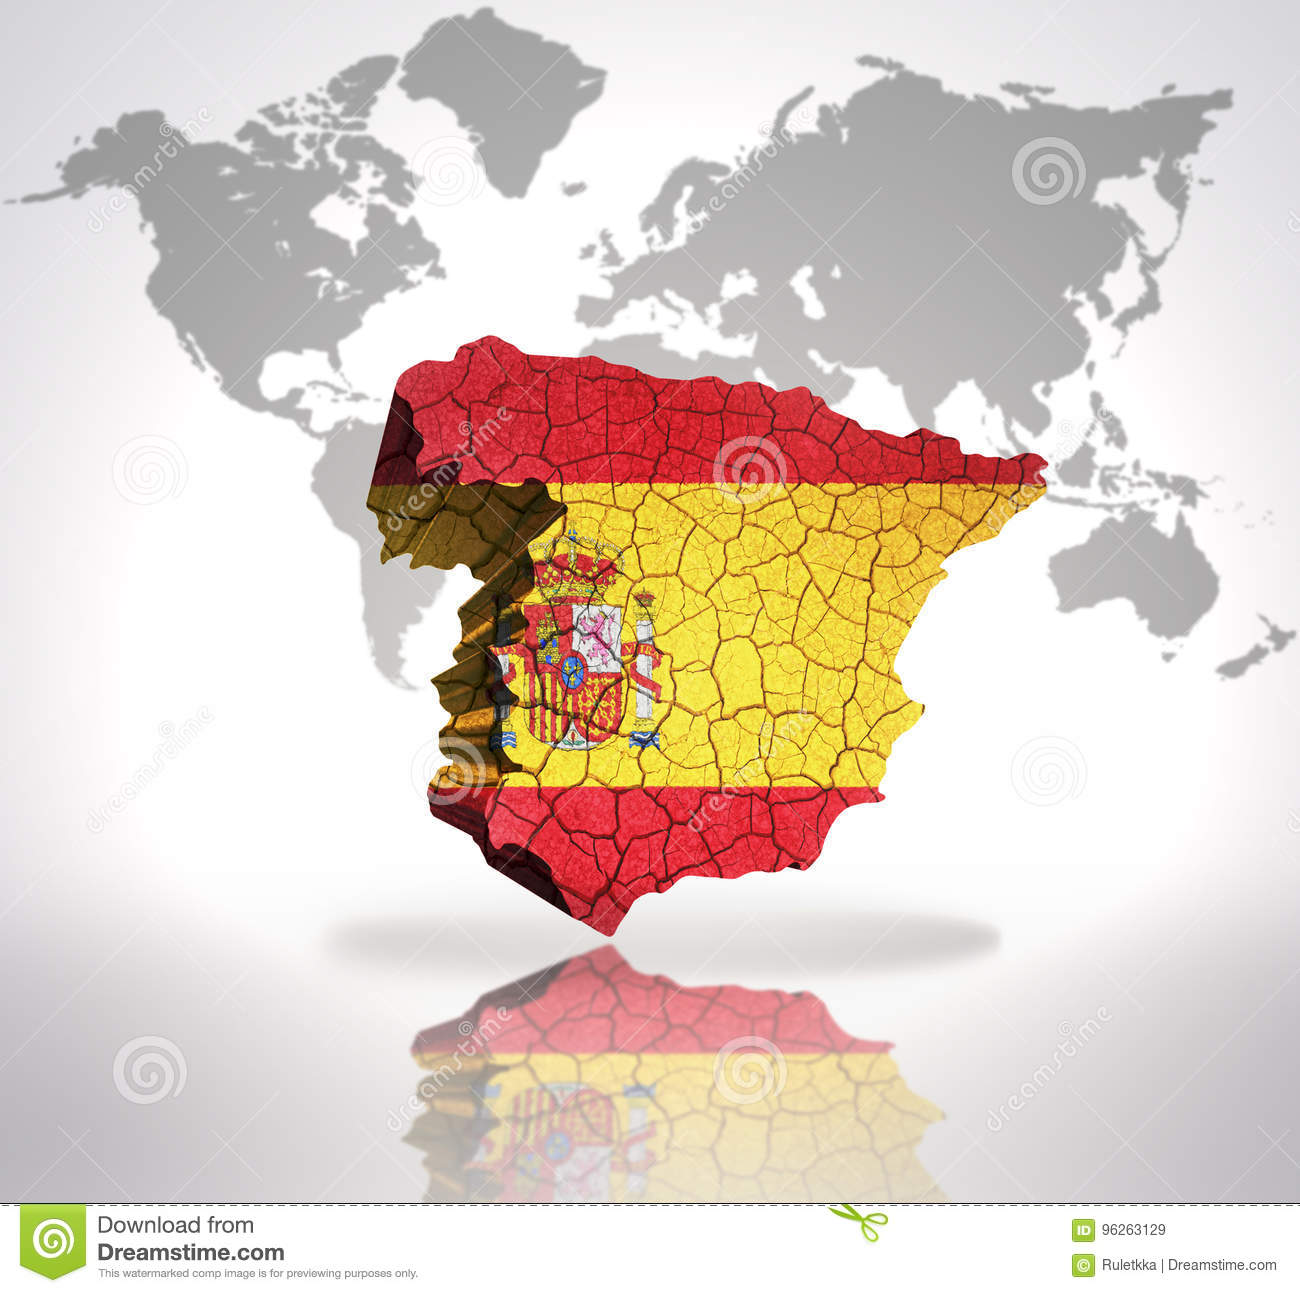 Map Of Spain In The World.Map Of Spain Stock Illustration Illustration Of Material 96263129